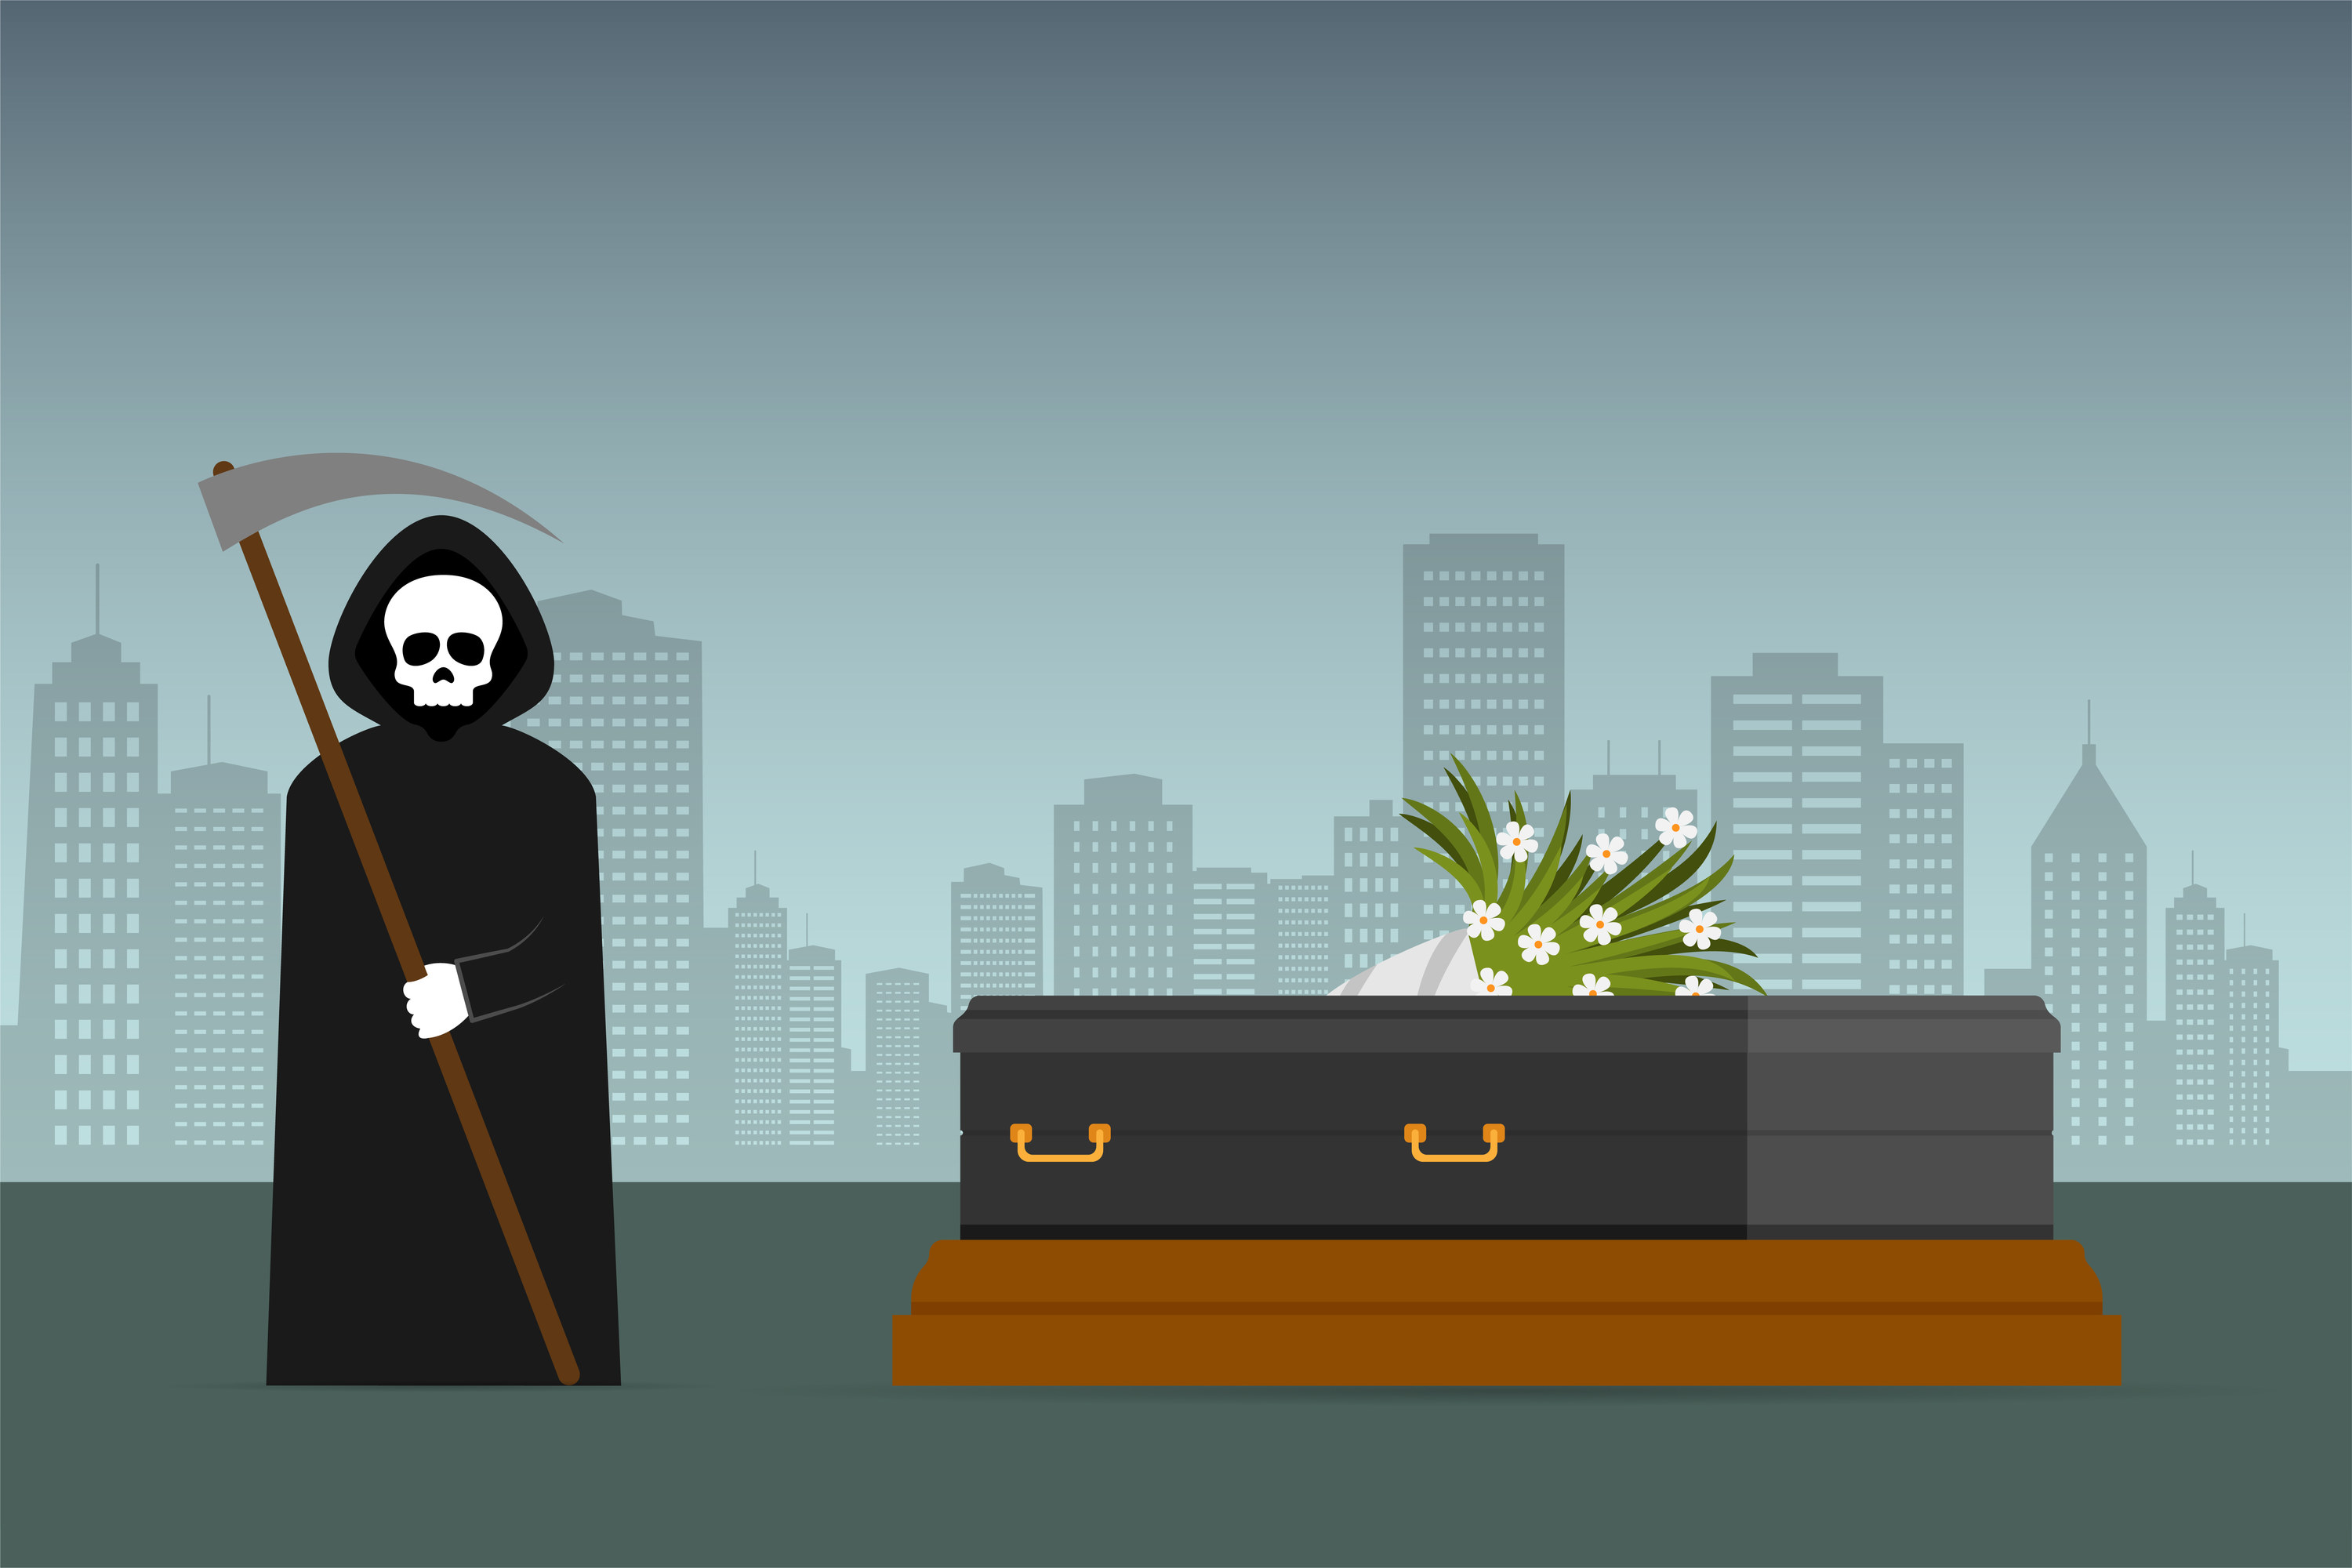 An animation of the grim reaper next to a coffin with a bouquet of flowers on top and a cityscape in the background